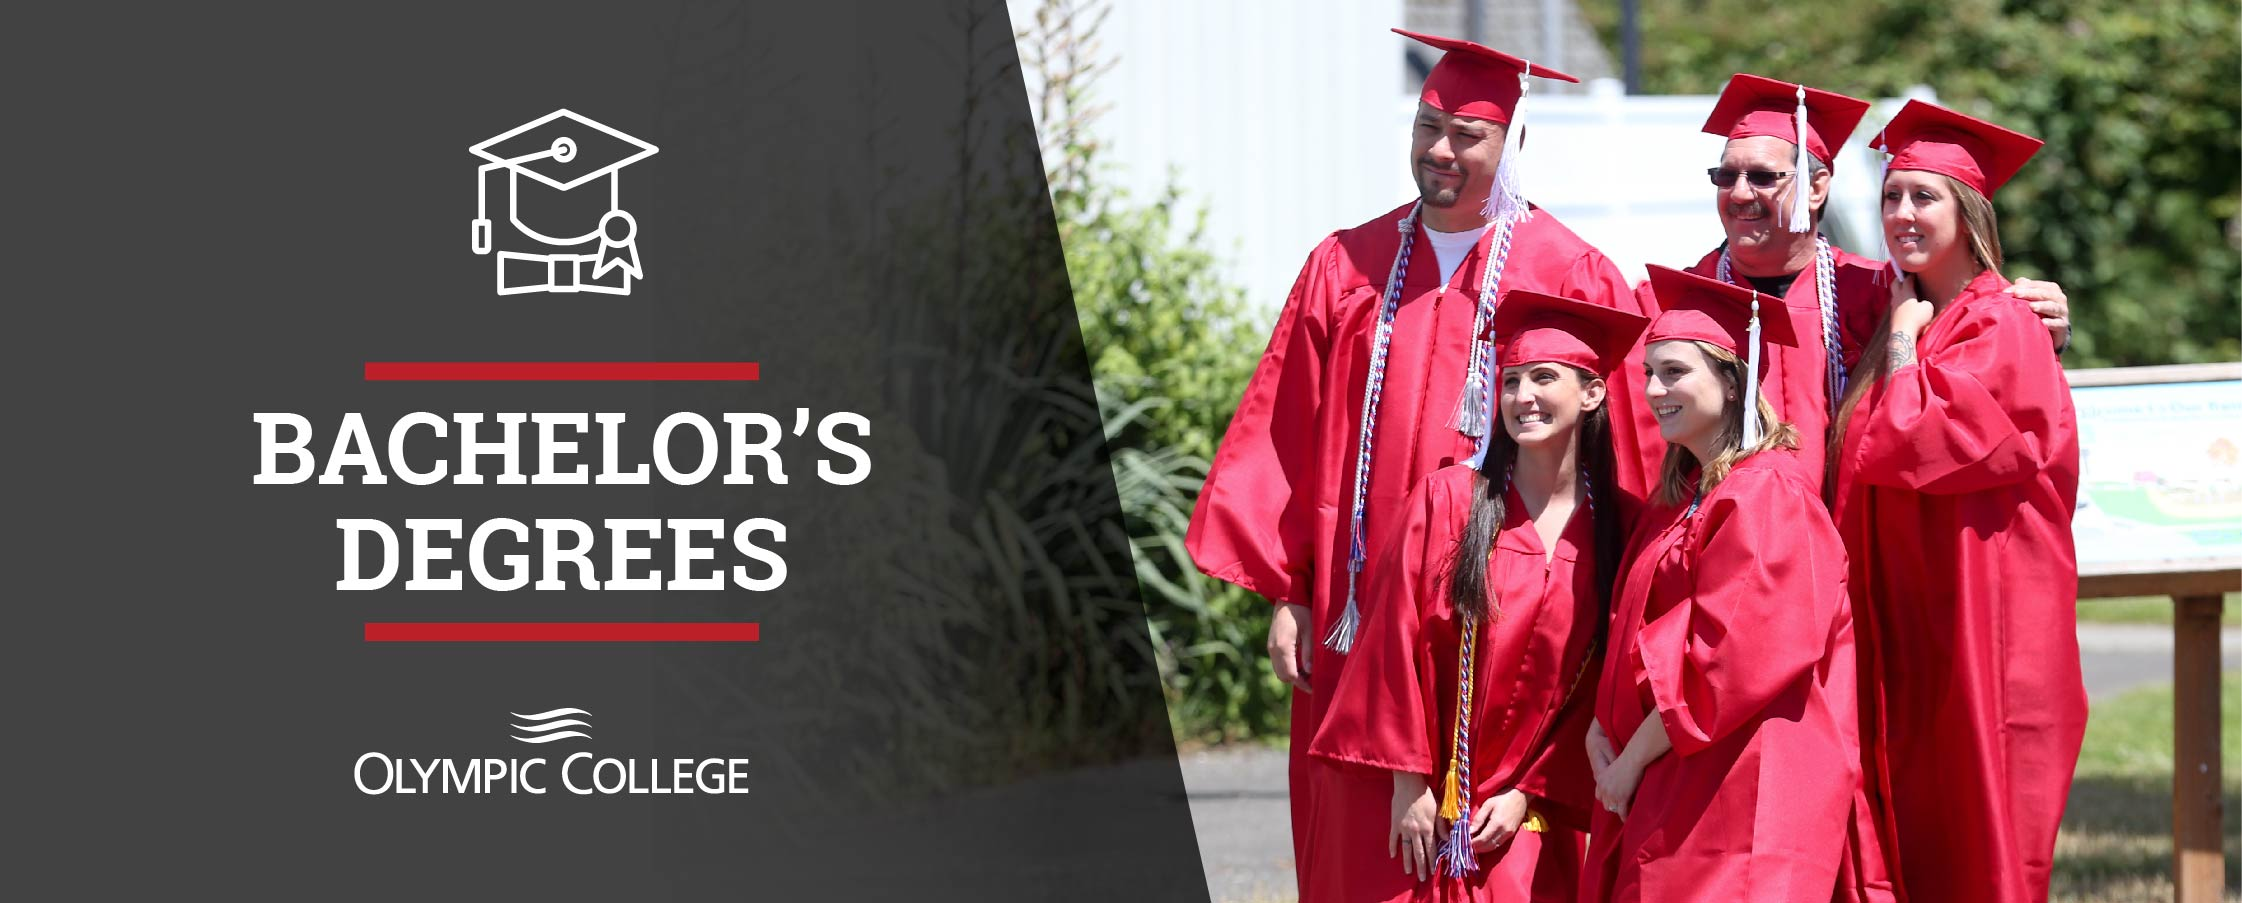 Bachelor's Degrees at Olympic College